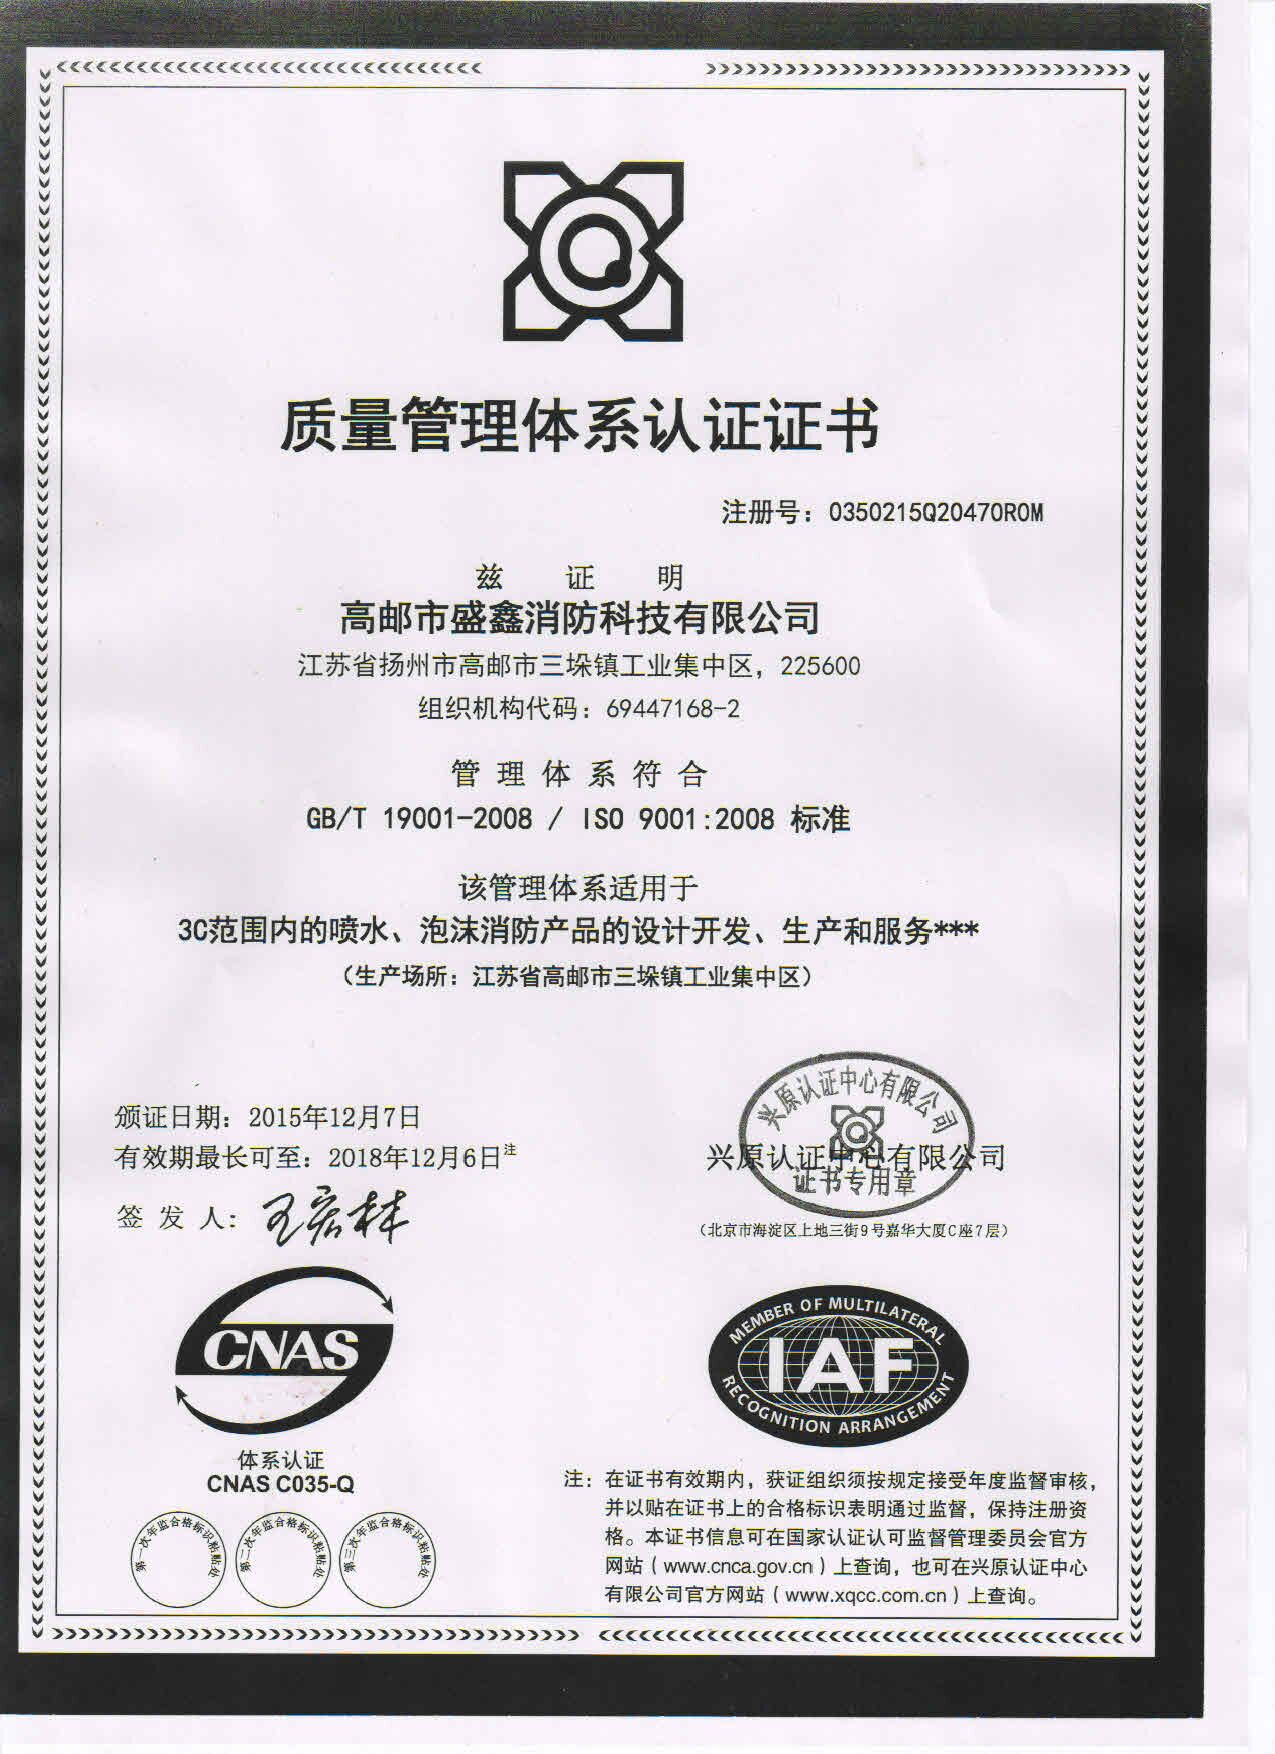 Sxfirepro technology incmanufacture of first class fire monitor ccc certificate ccc certificate certificate of iso9001 xflitez Image collections